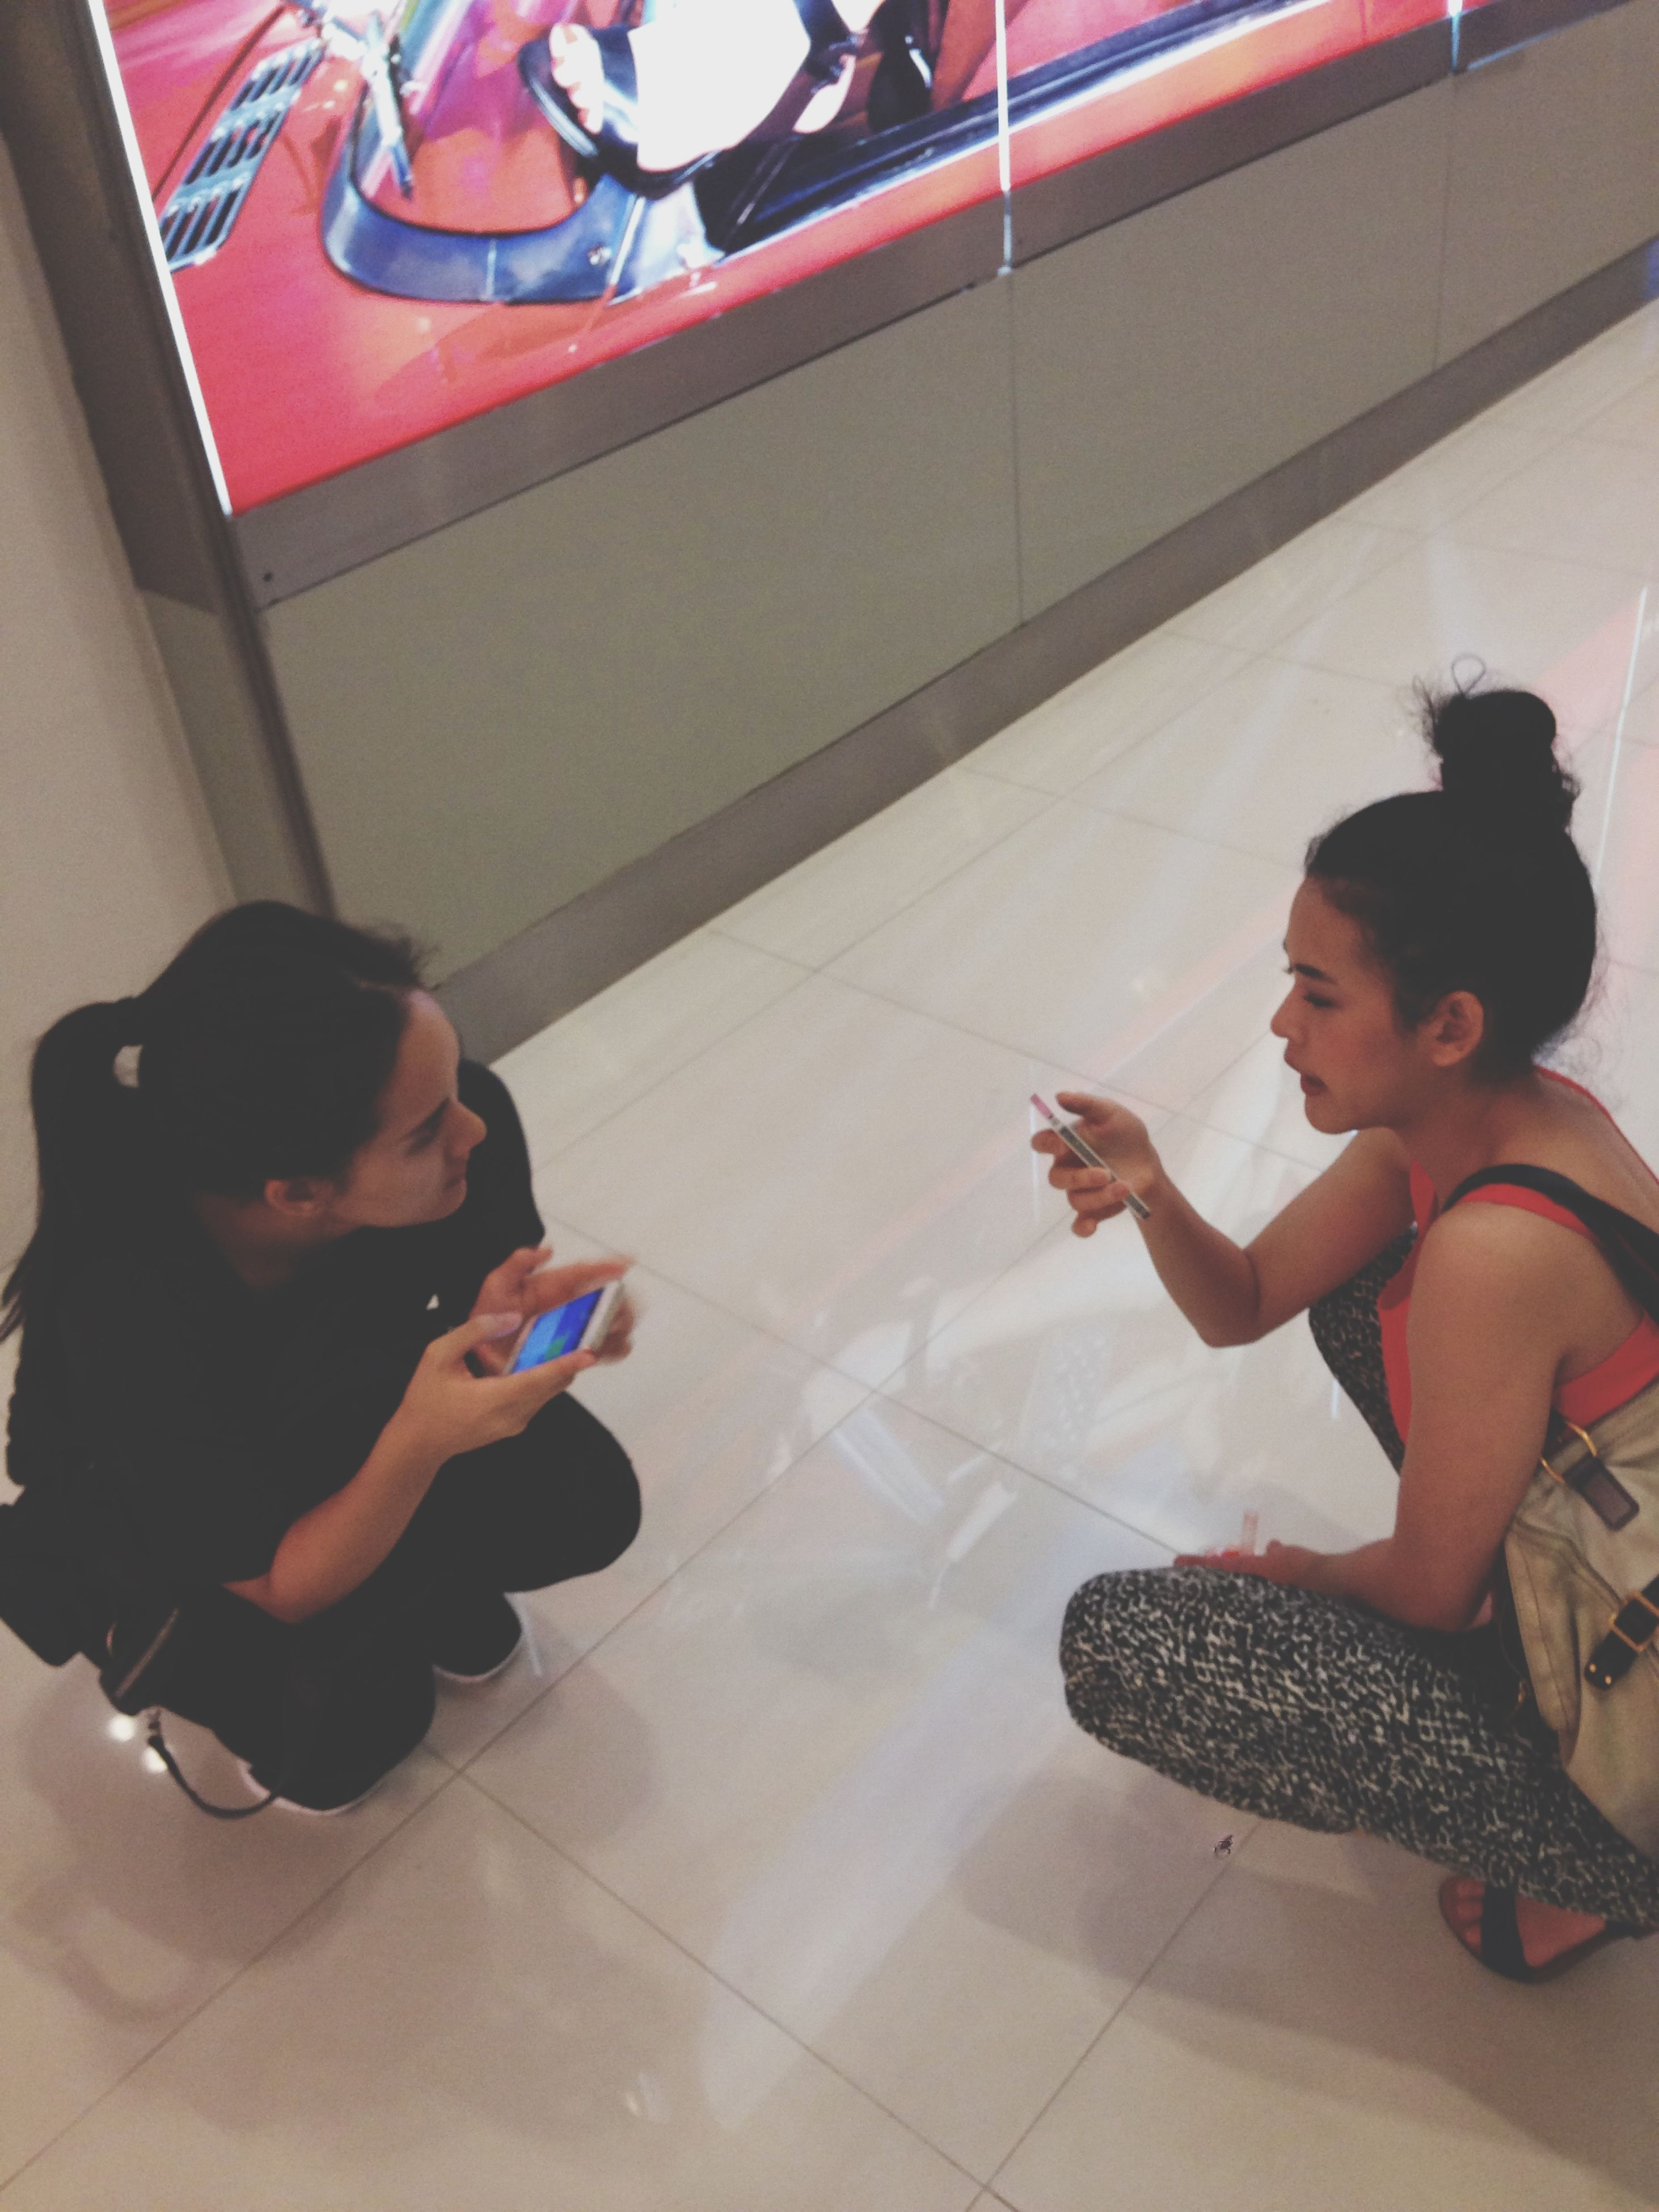 indoors, lifestyles, leisure activity, person, casual clothing, young adult, full length, childhood, sitting, young women, home interior, happiness, togetherness, fun, holding, high angle view, smiling